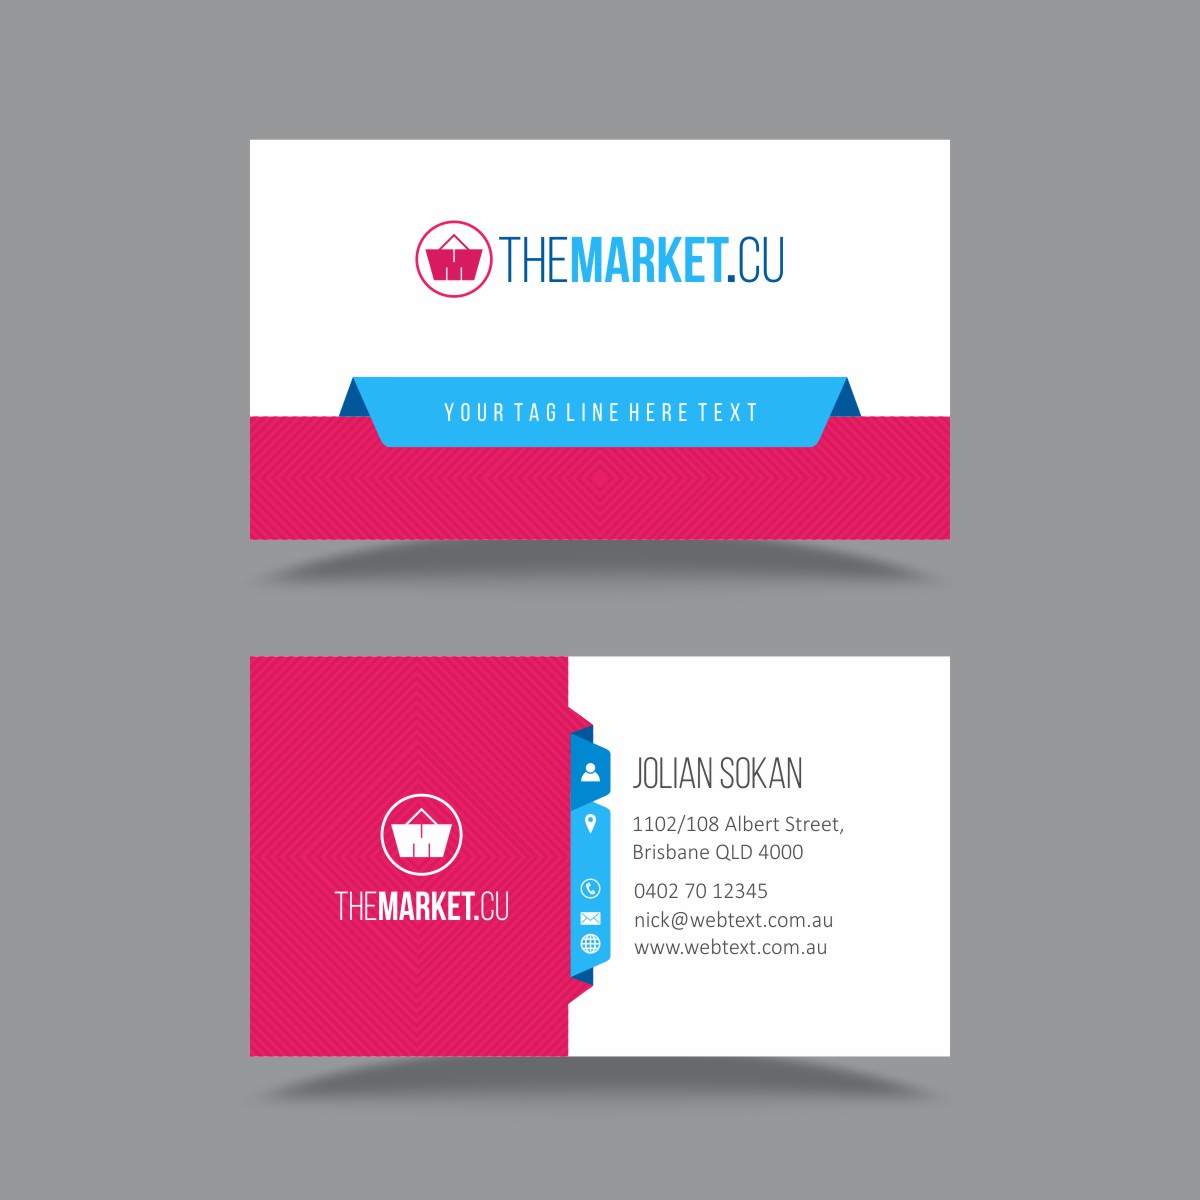 Ecommerce business card template online logo makers blog ecommerce business card template reheart Gallery